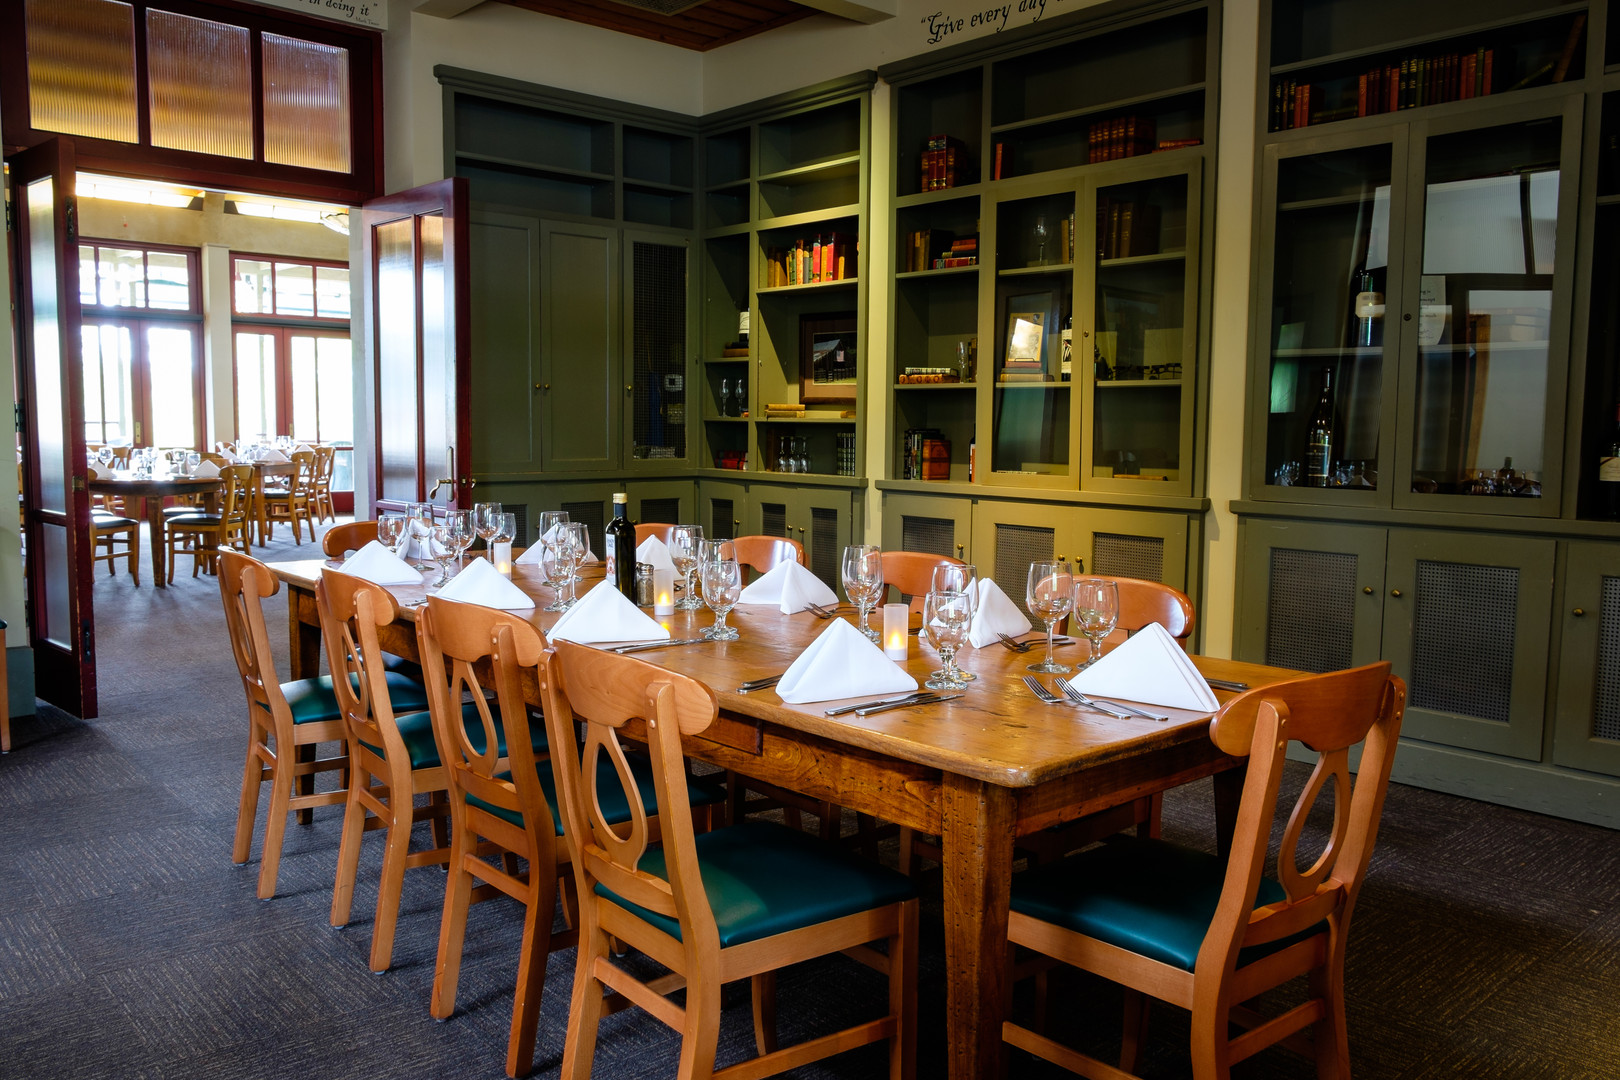 The Mark Twain Library at CAMPS Restaurant